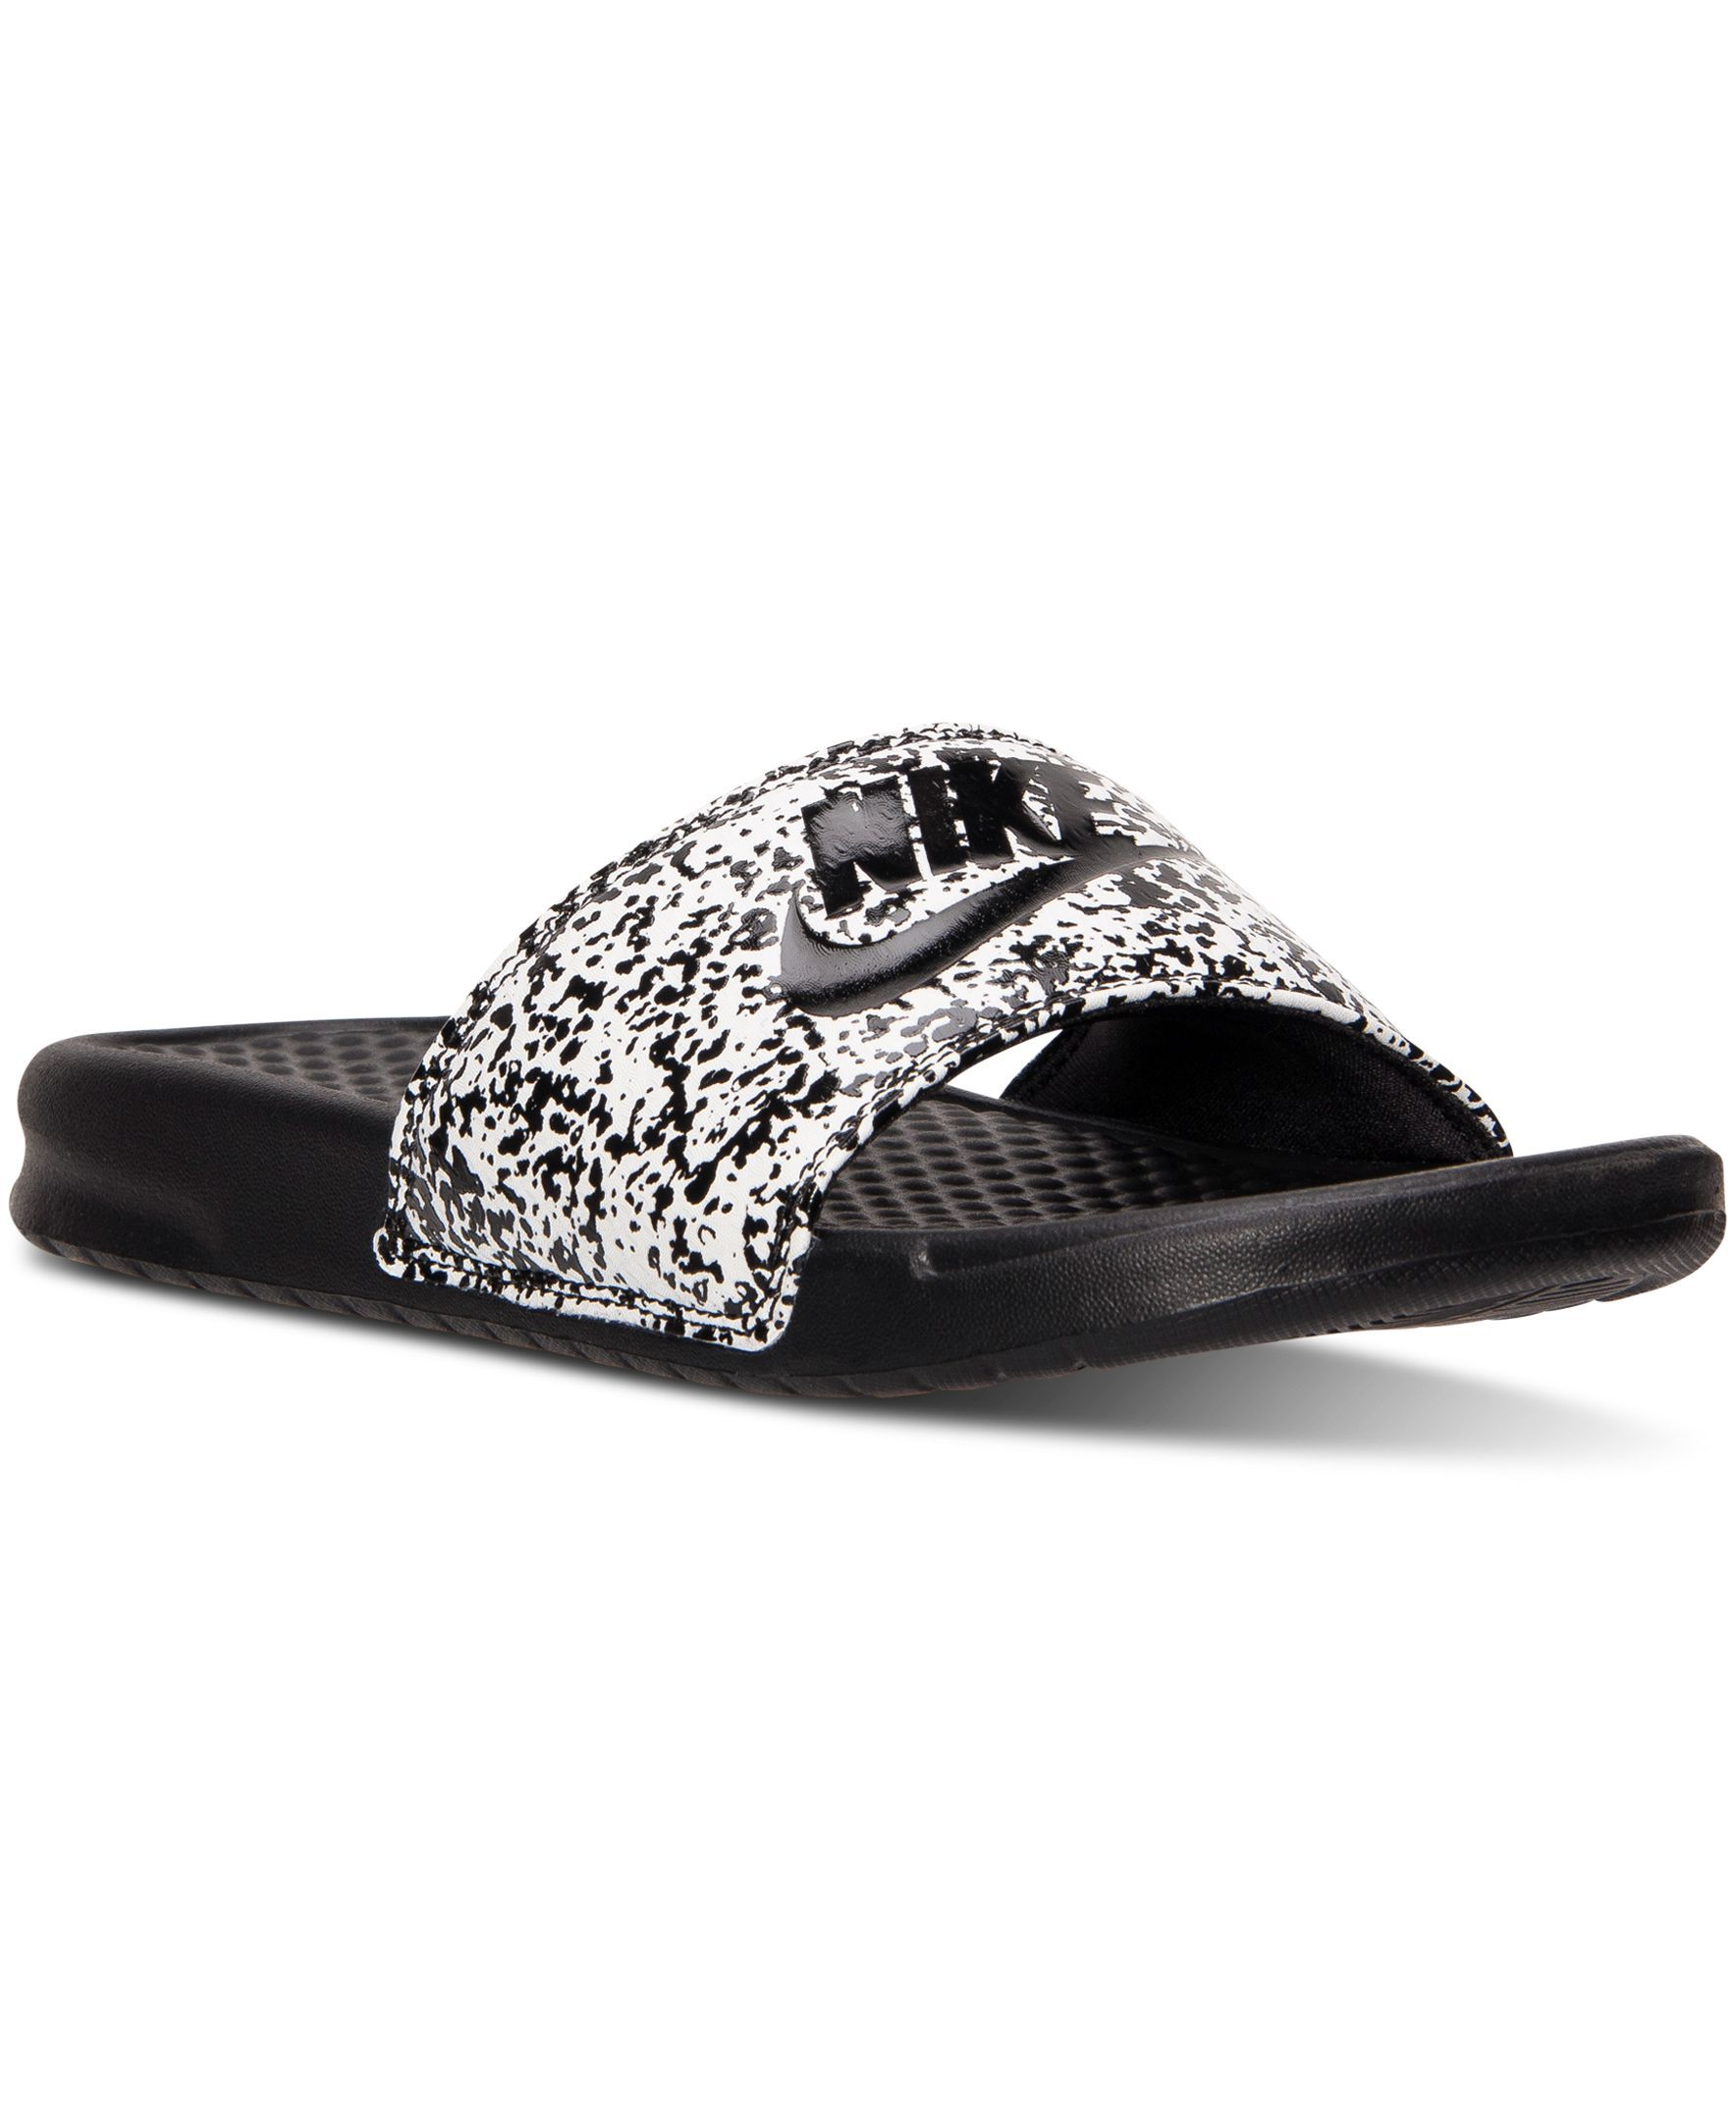 Nike Men s Benassi Jdi Print Slide Sandals from Finish Line  fb8b459af